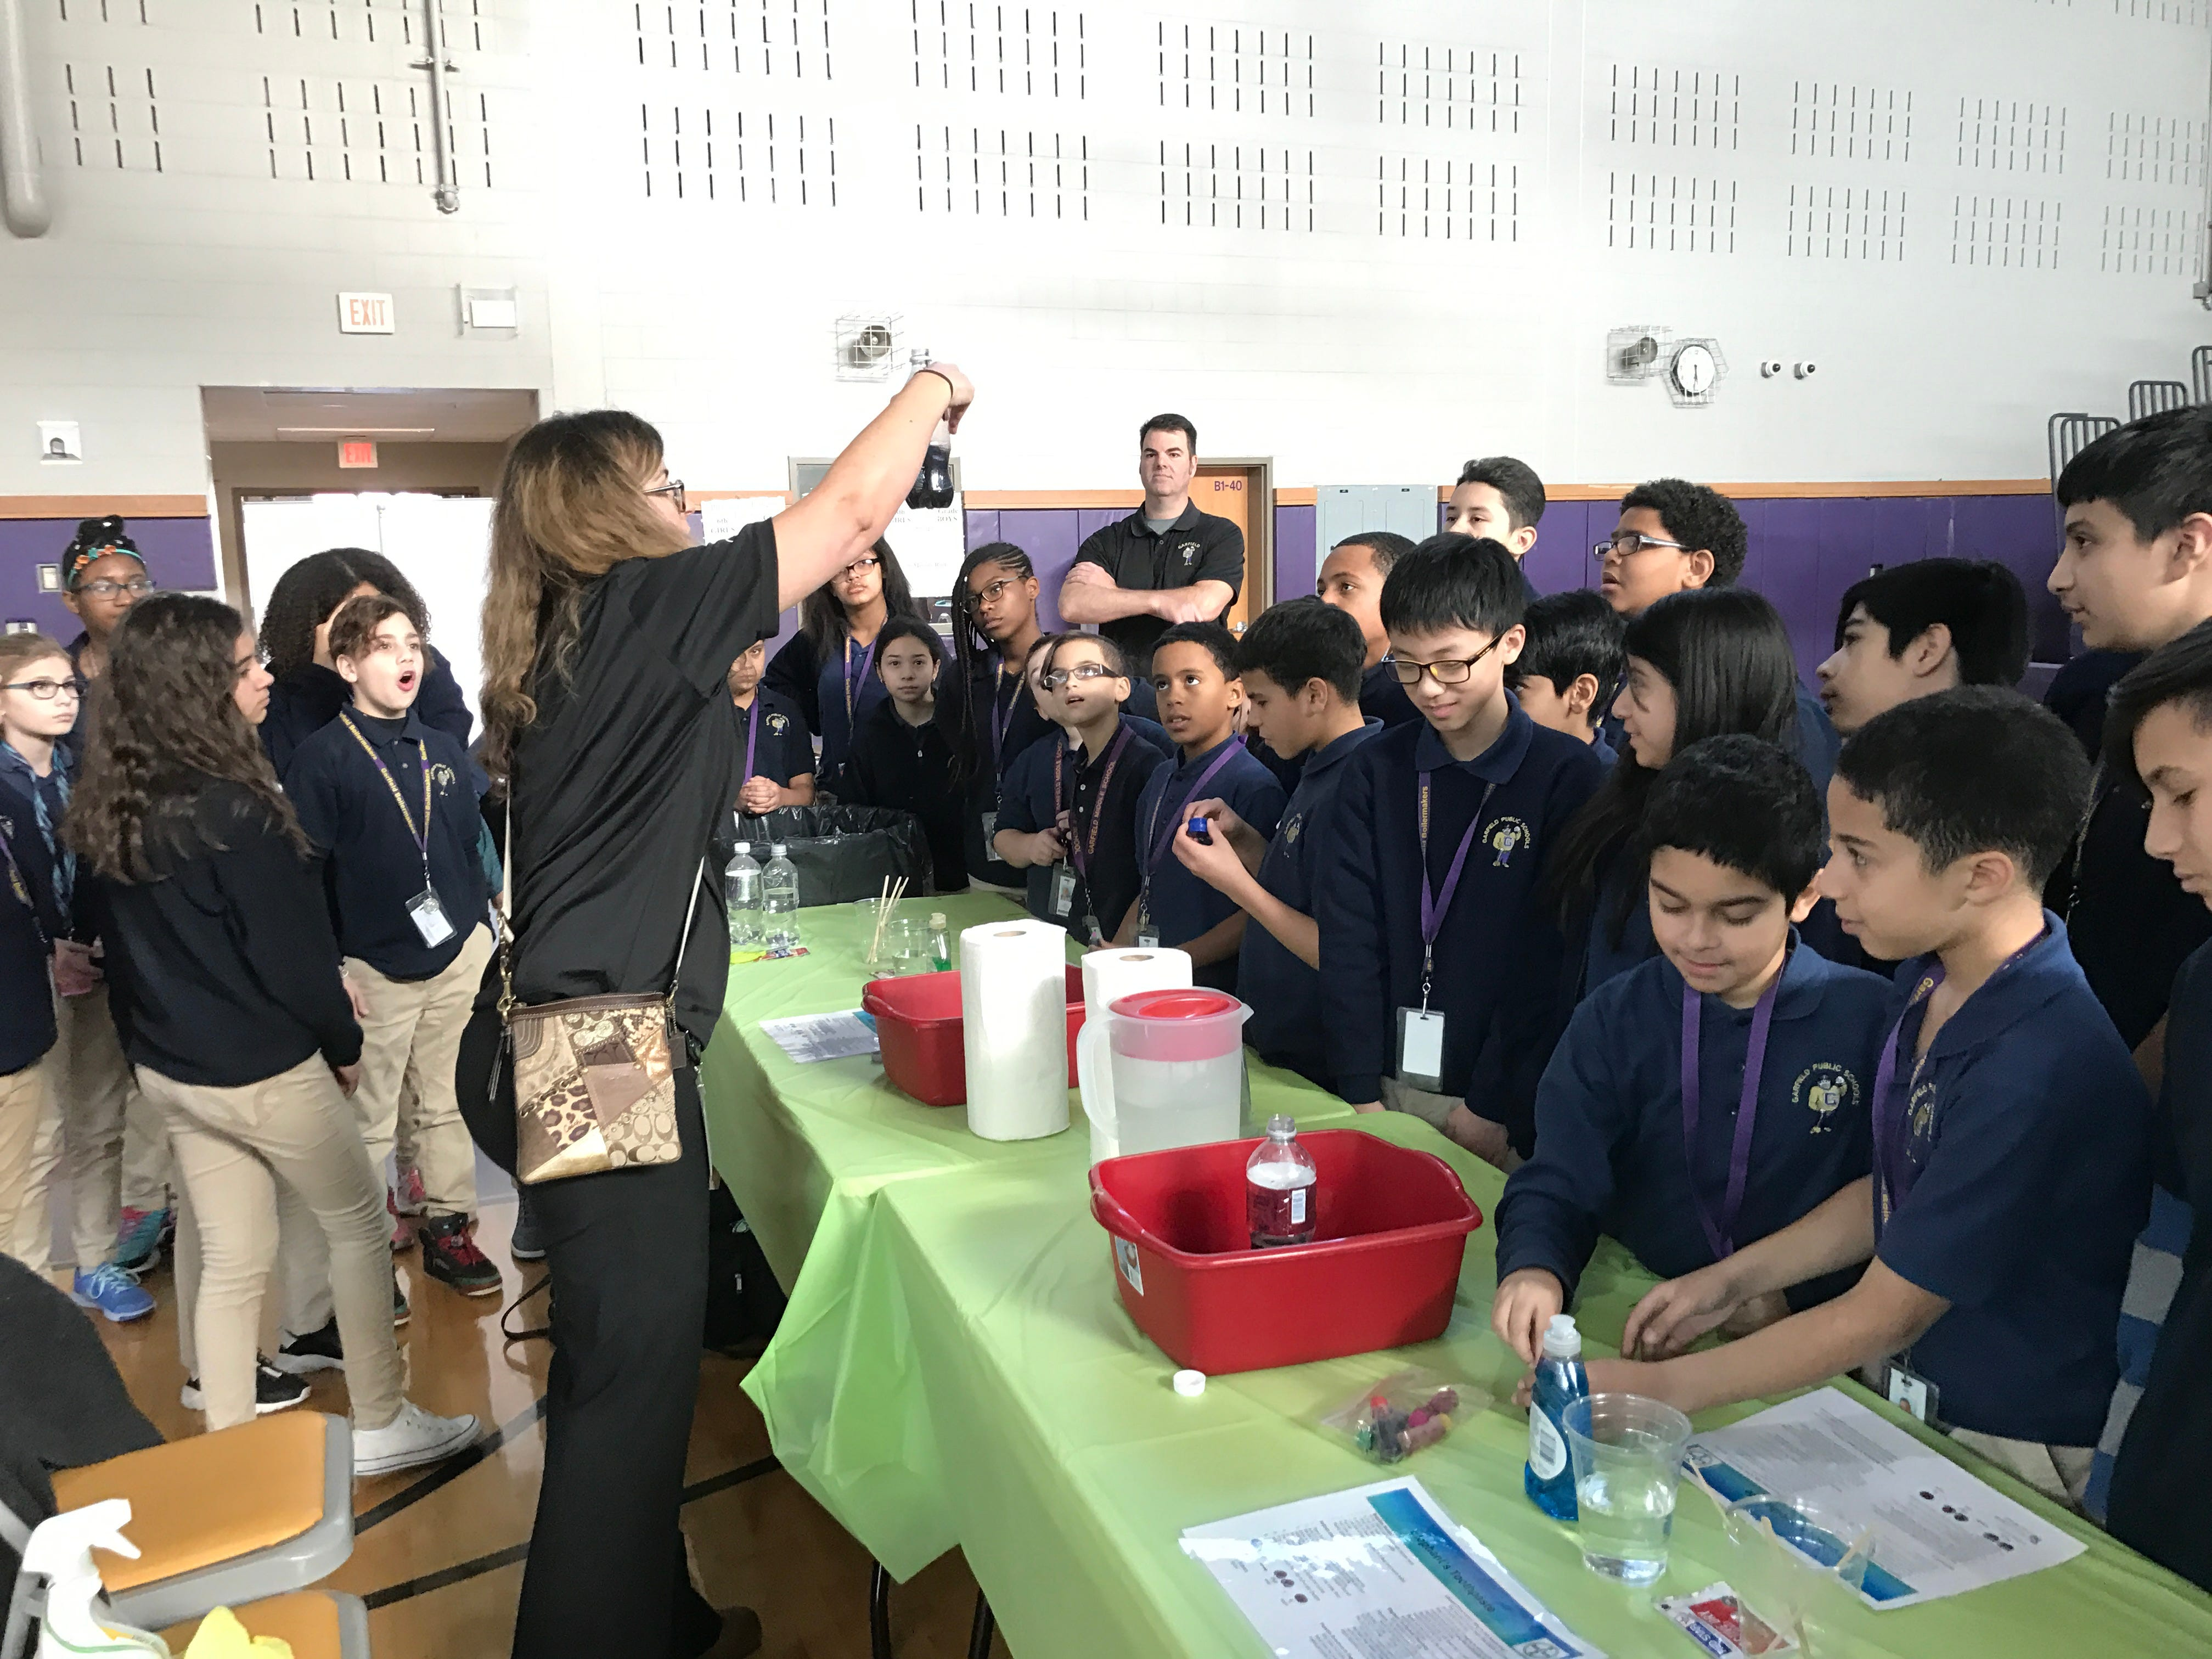 Students at Garfield Middle School learn about chemical reactions from a Bayer volunteer.